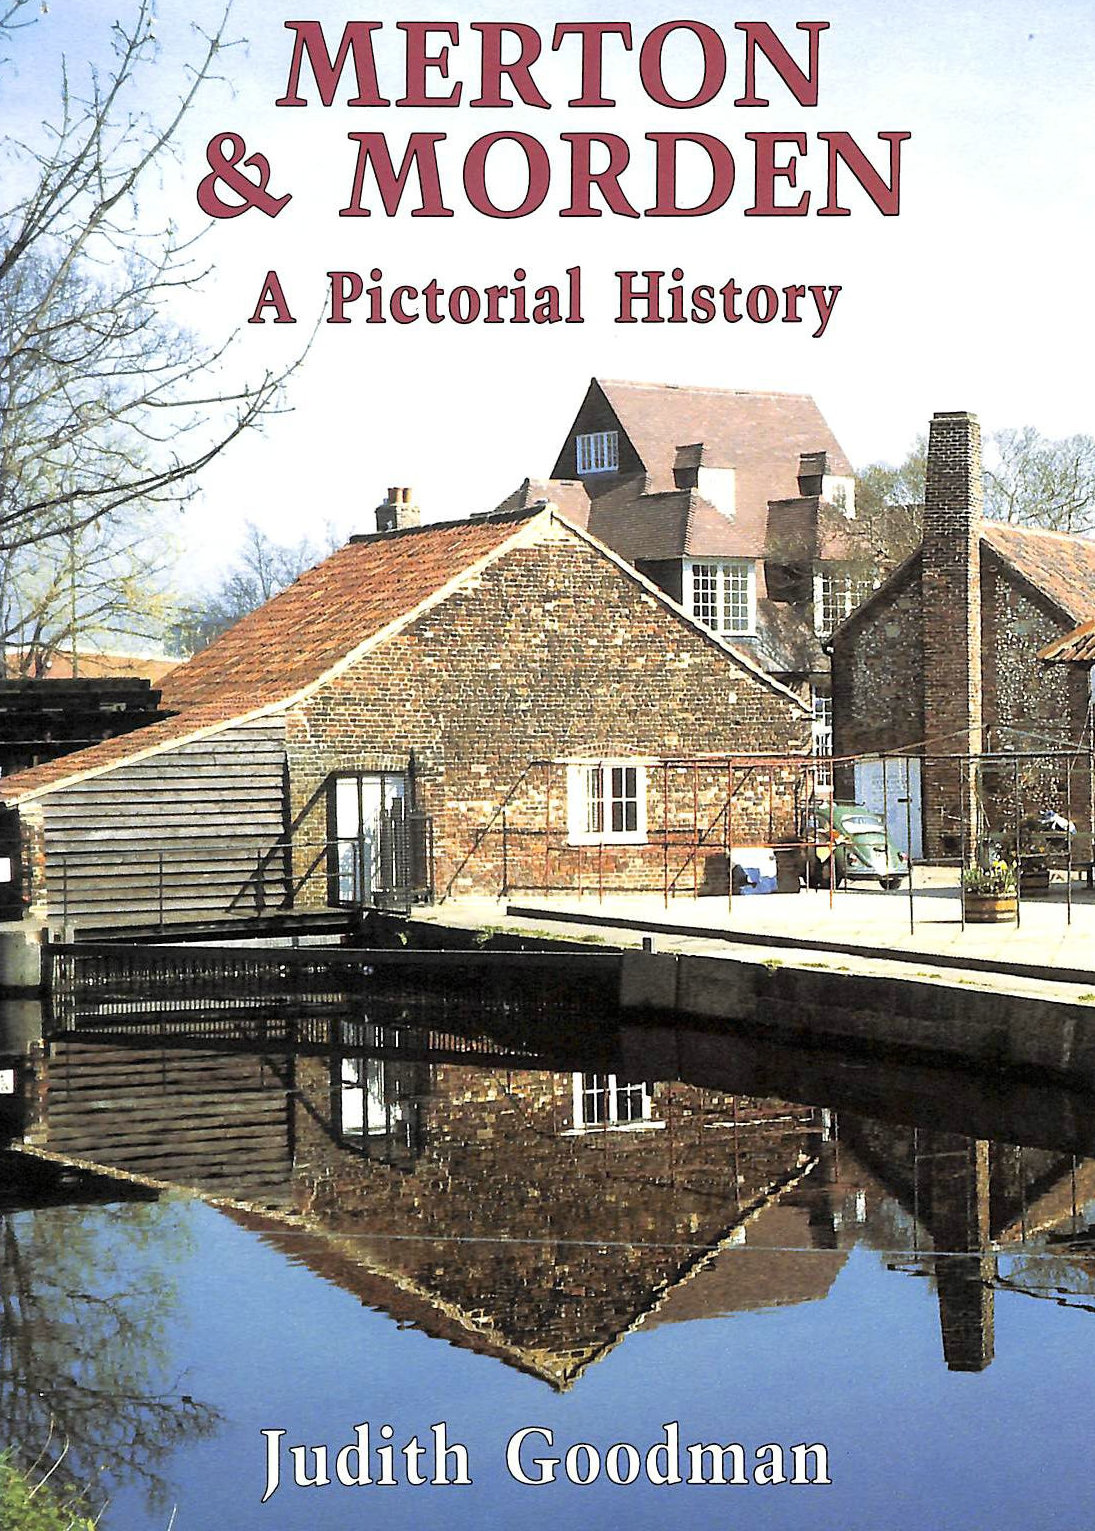 Image for Merton and Morden: A Pictorial History (Pictorial history series)